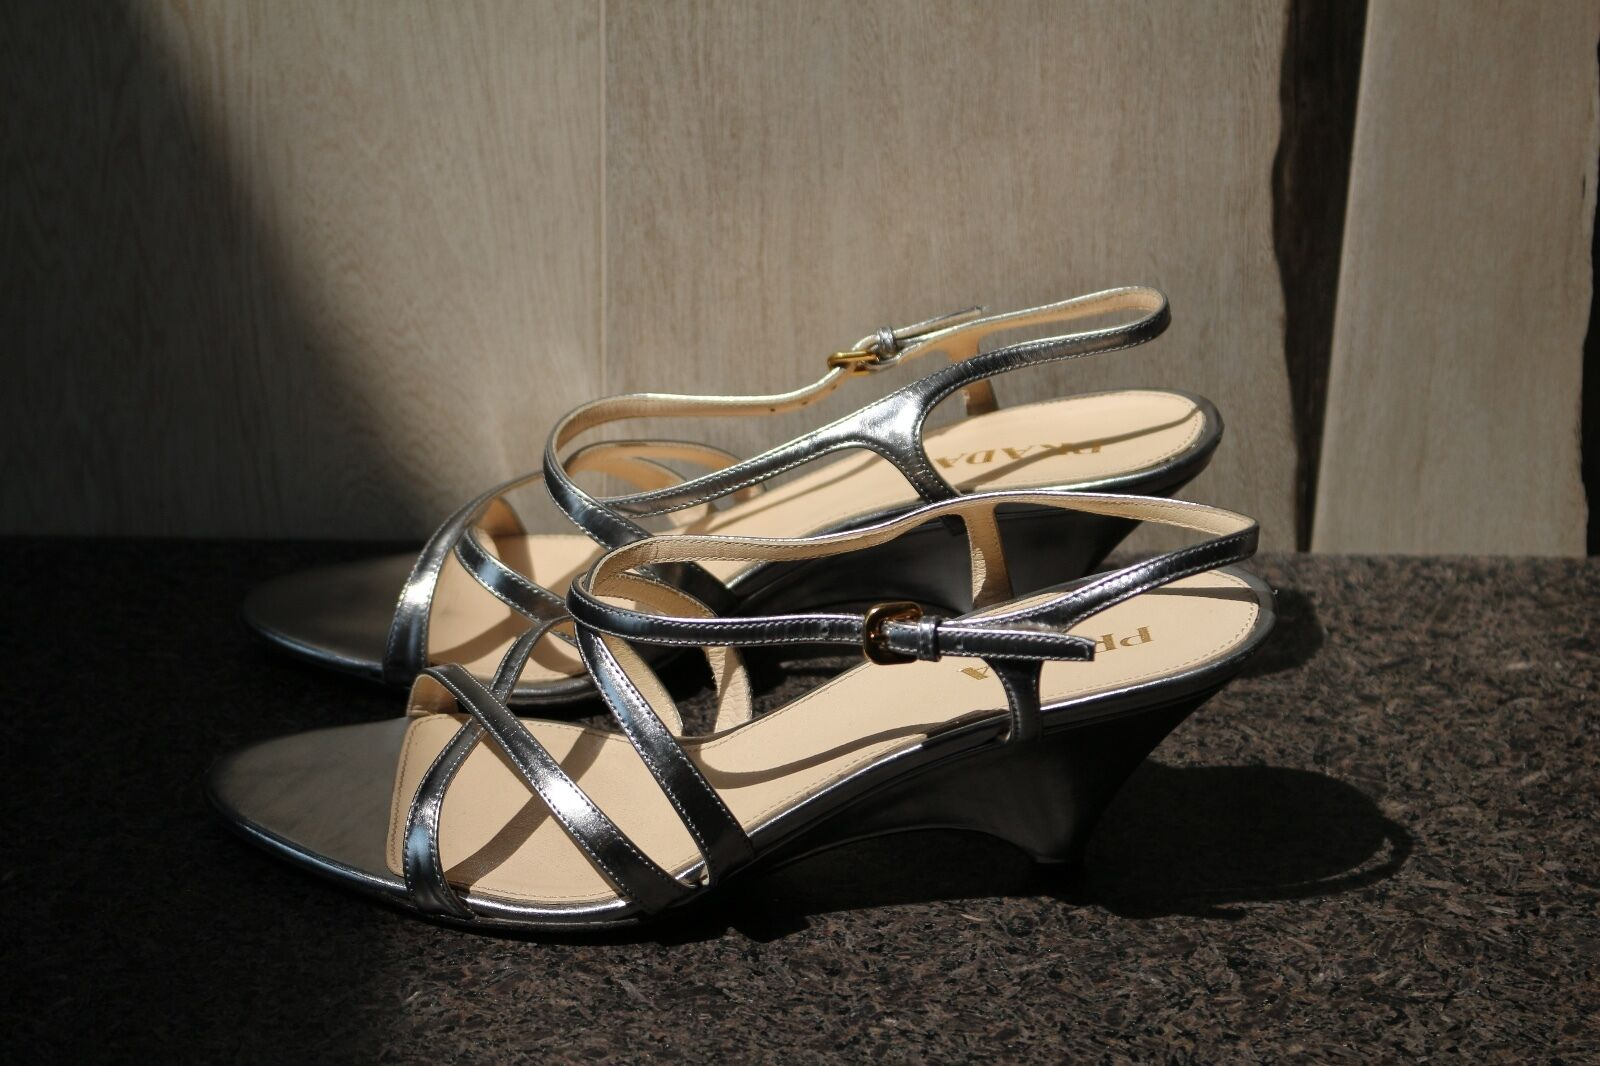 PRADA  PlatformWedge Strappy Schuhes Sandales Open Toe Schuhes Strappy 39.5 7e142e